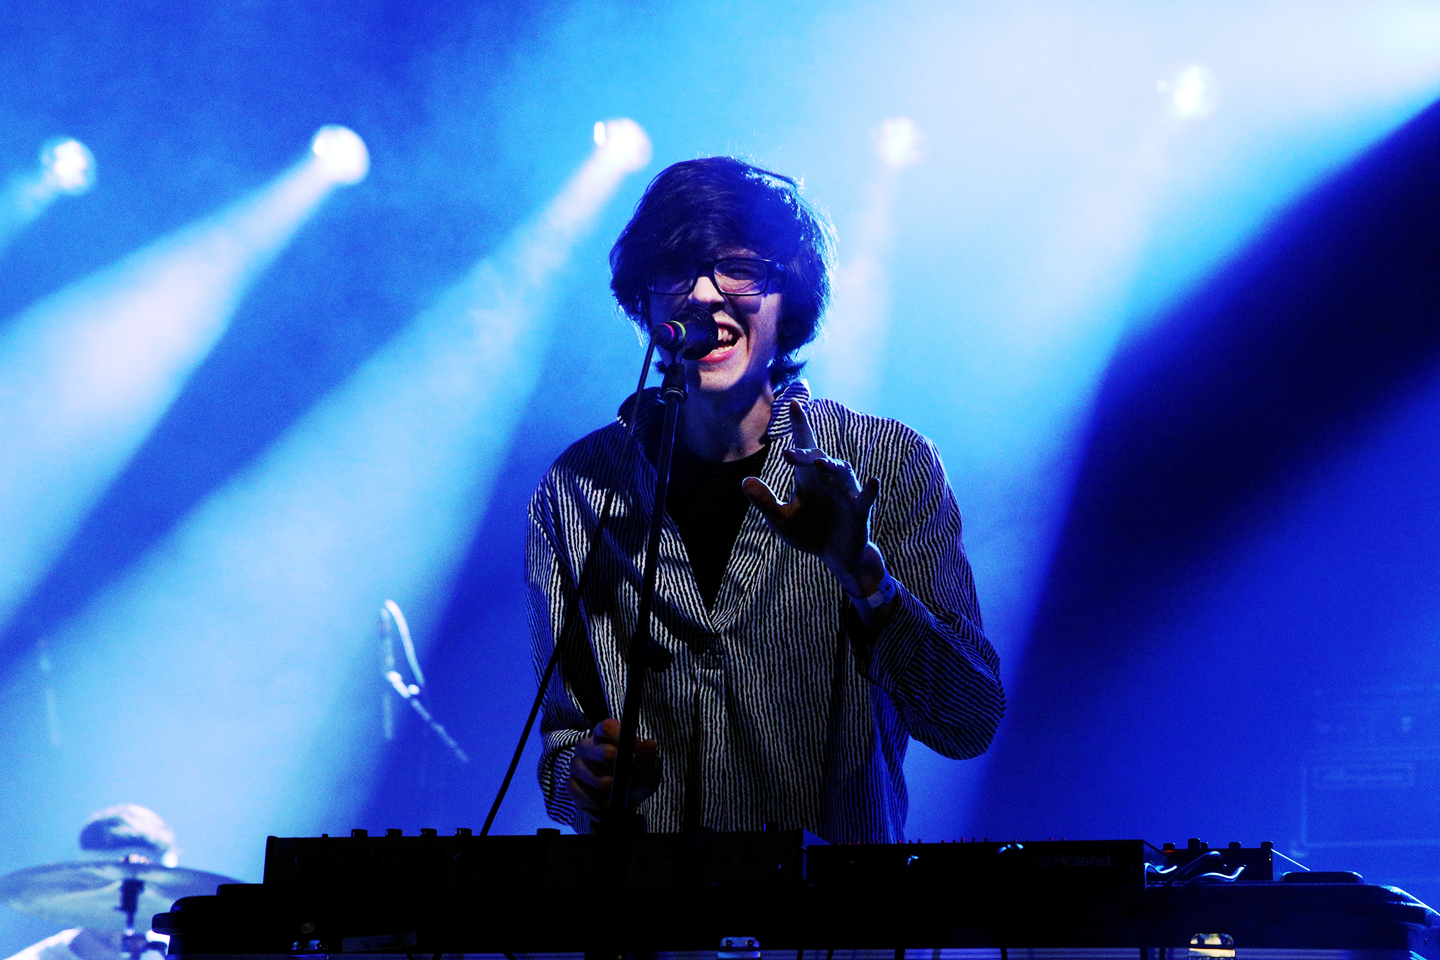 Will Toledo of Car Seat Headrest performs onstage at the Ticketmaster Music showcase at Stubb's.